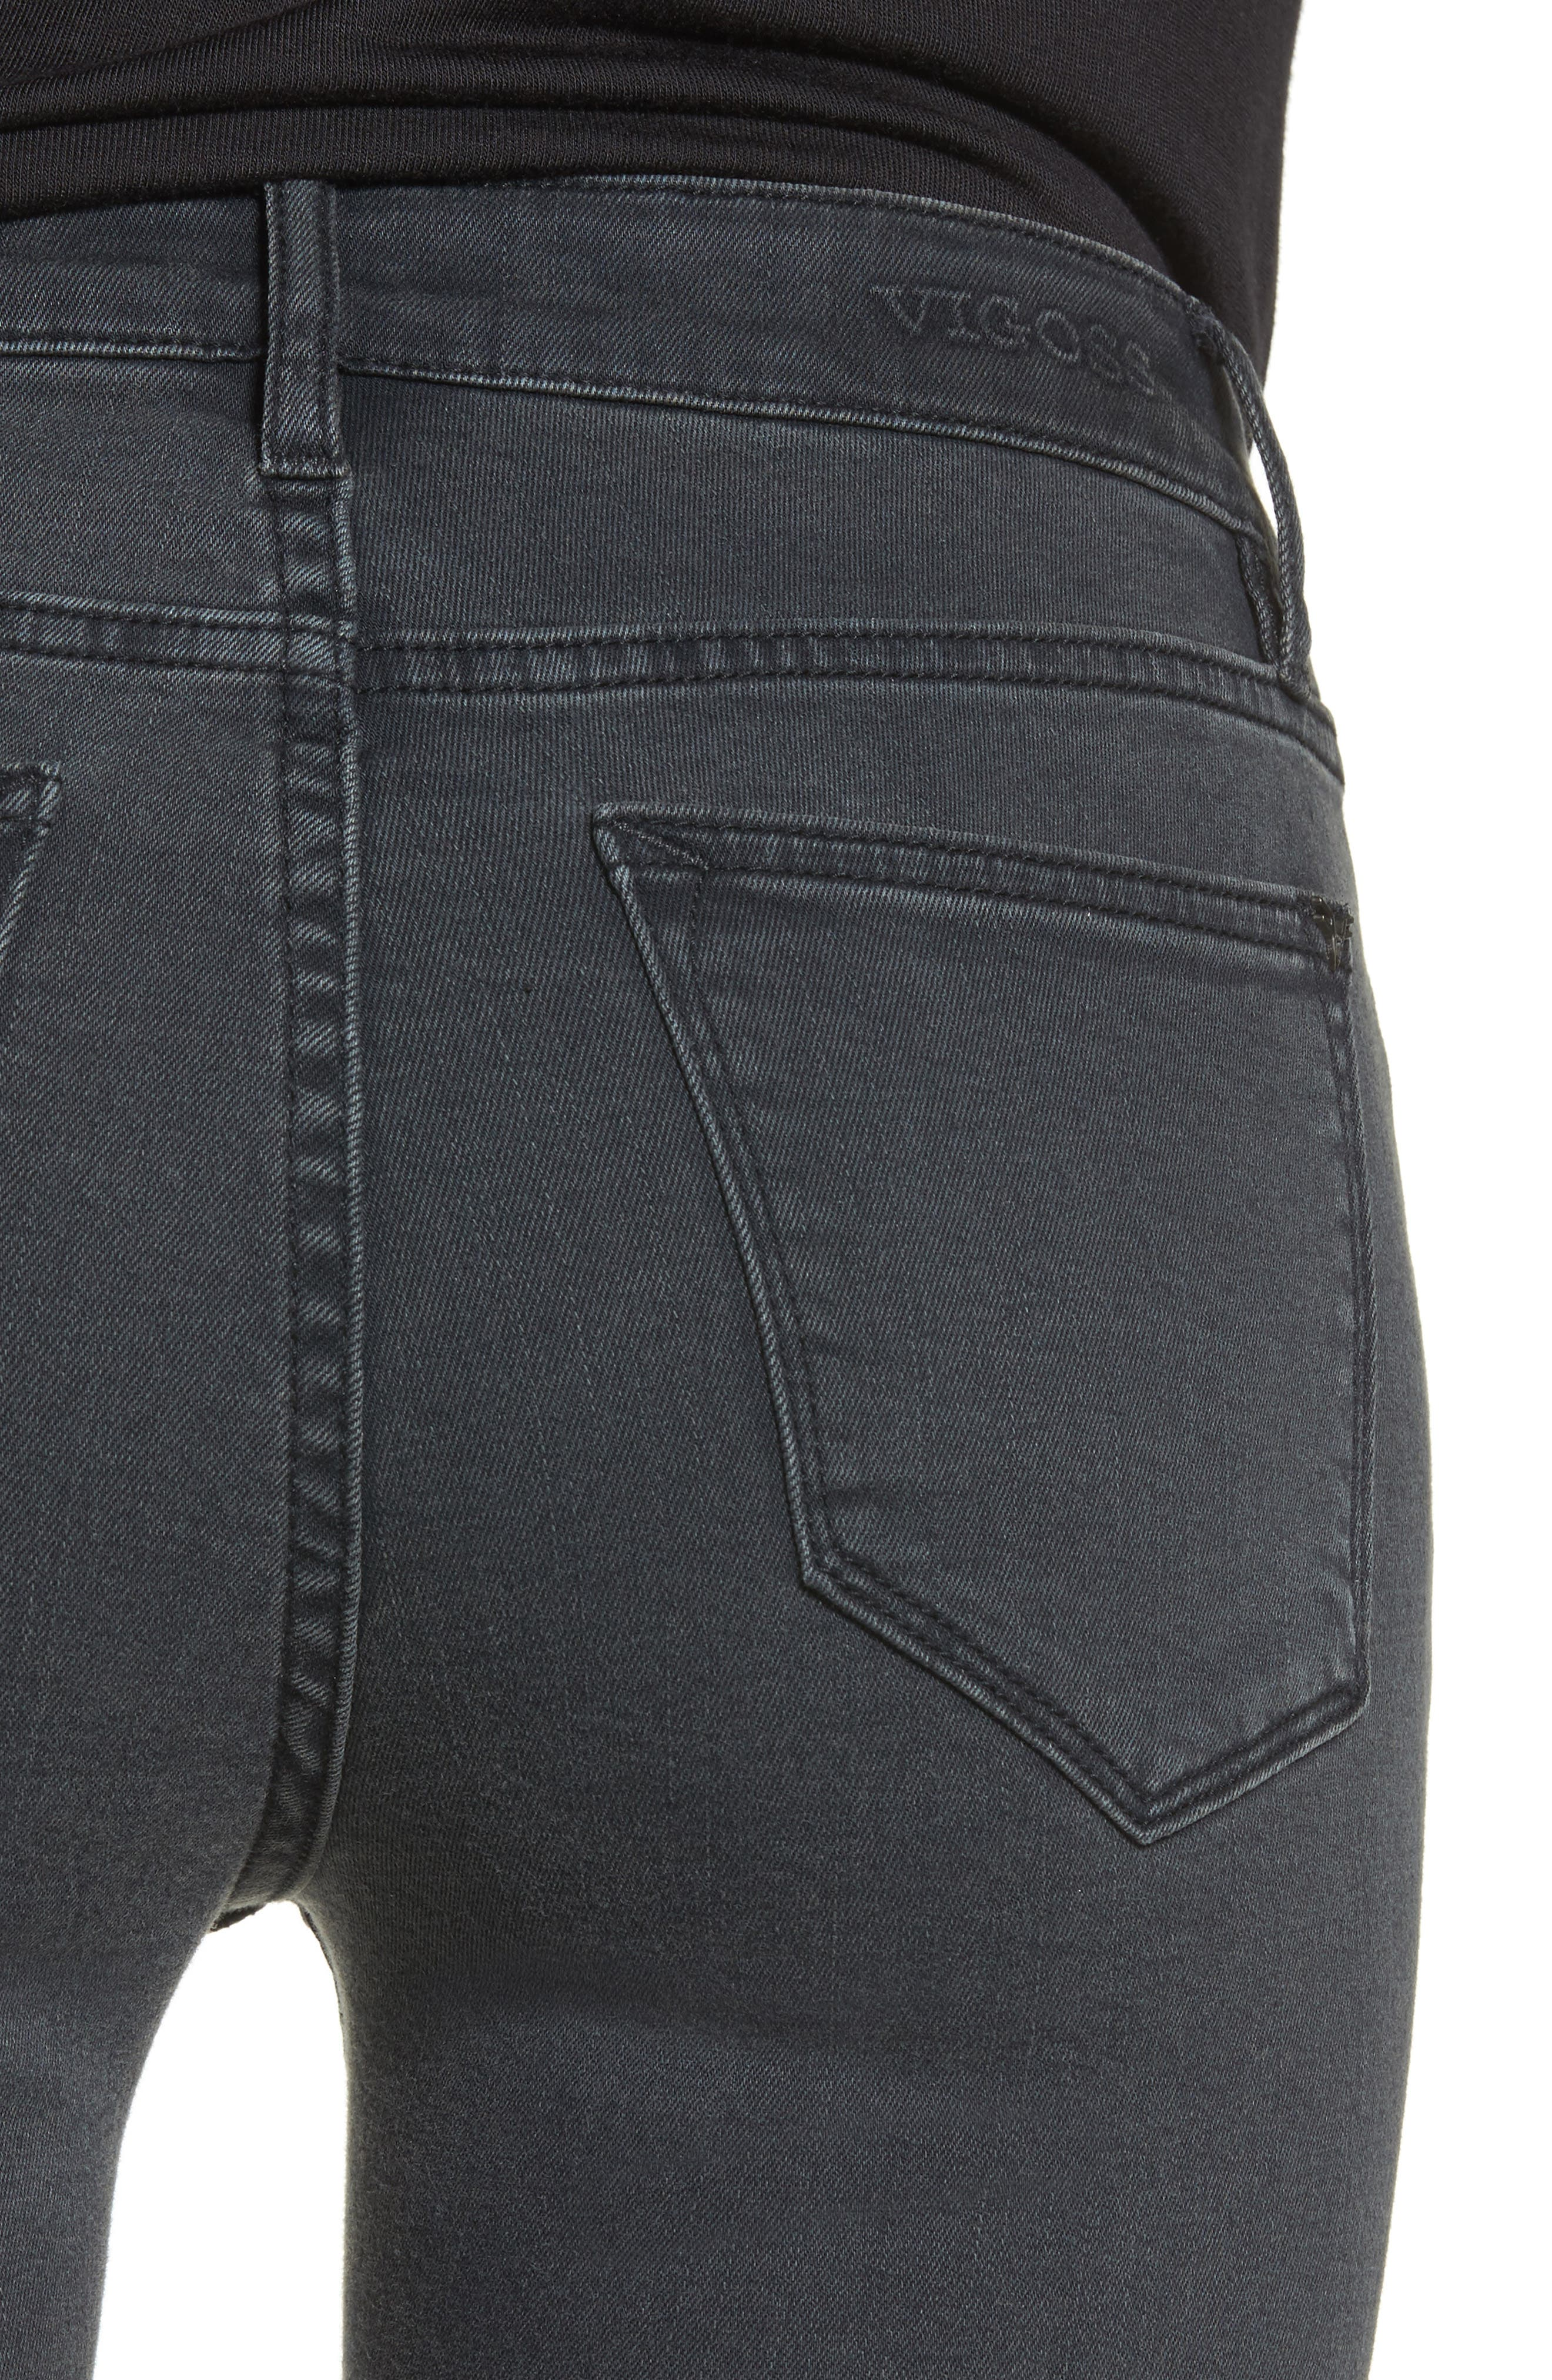 Jagger Front Seam Skinny Jeans,                             Alternate thumbnail 4, color,                             Washed Black